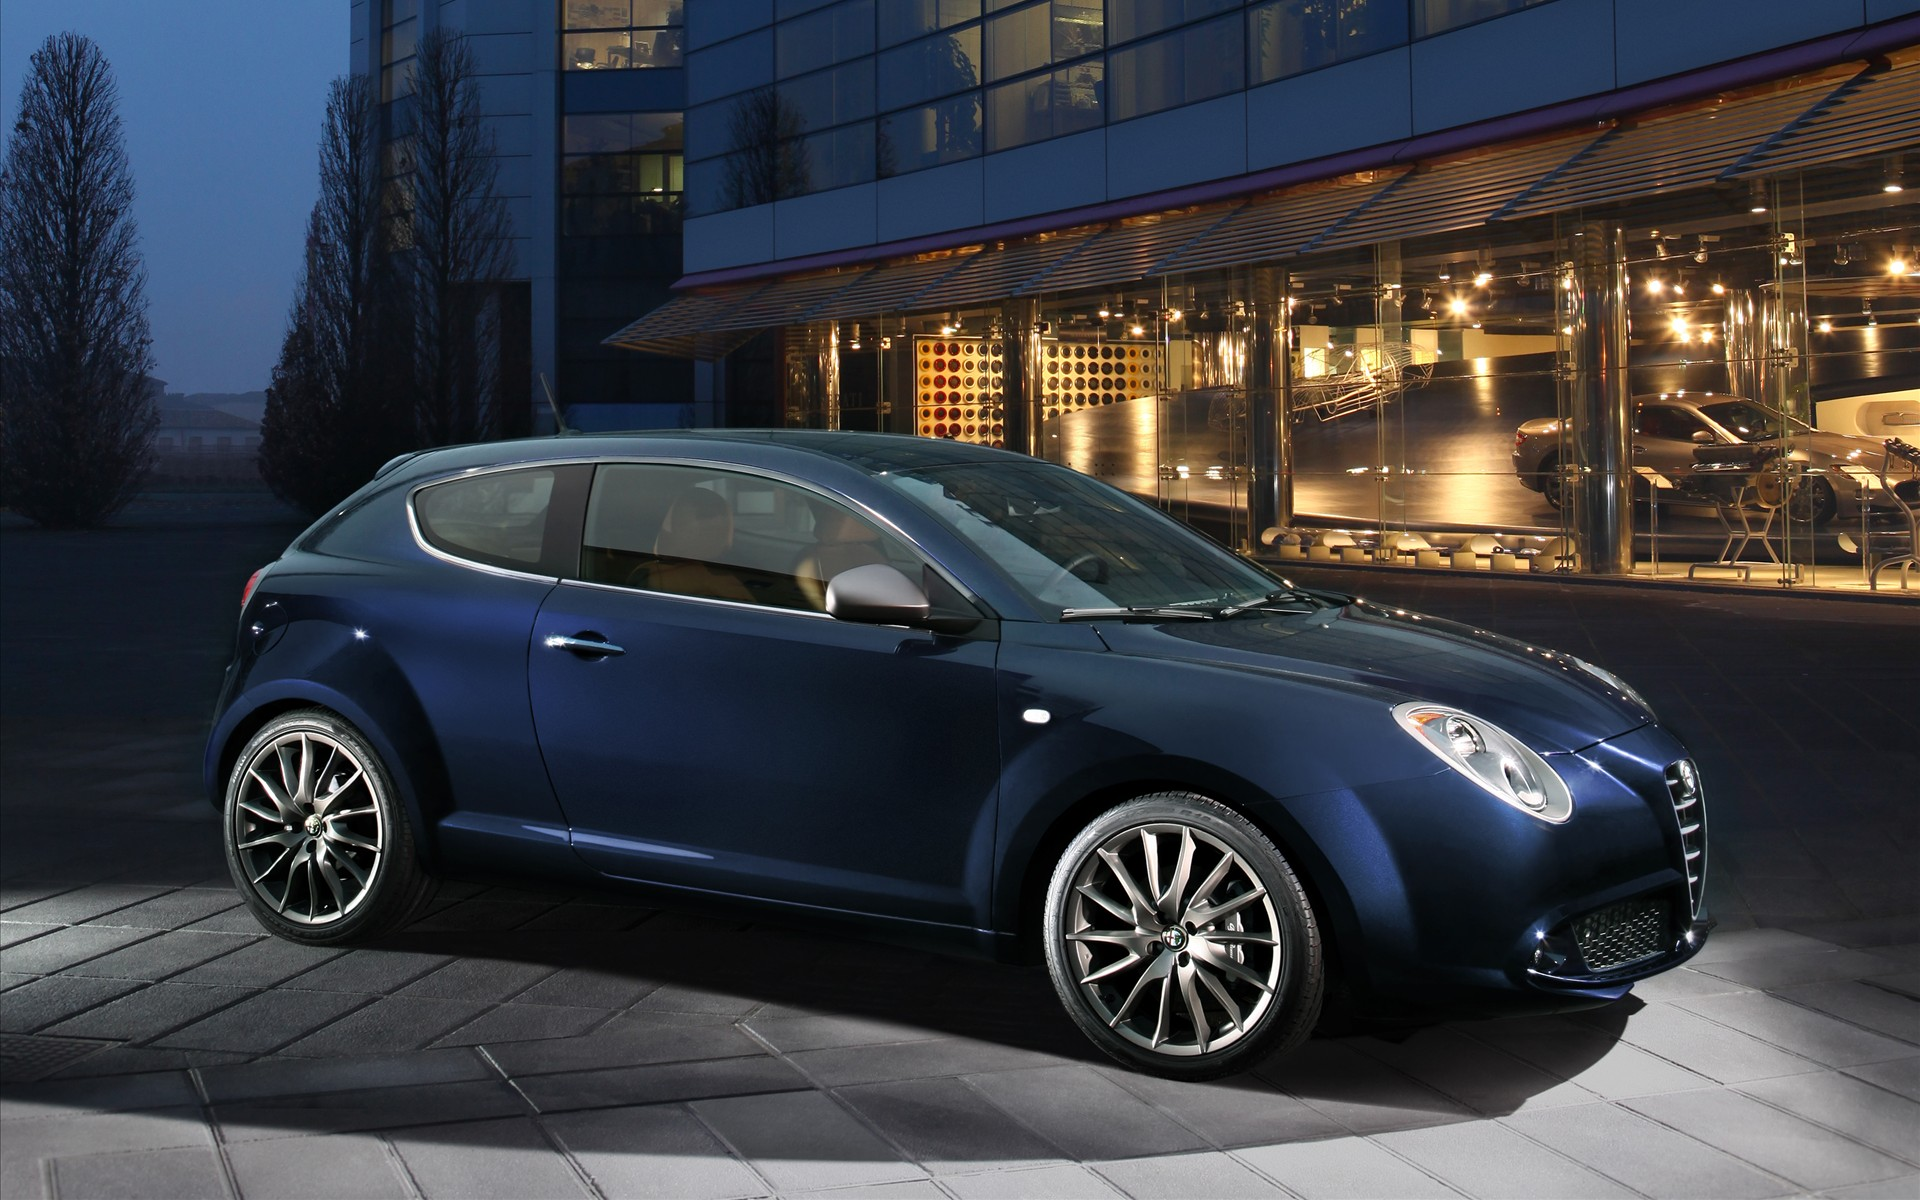 Alfa Romeo MiTo Maserati Wallpapers HD Wallpapers 1920x1200